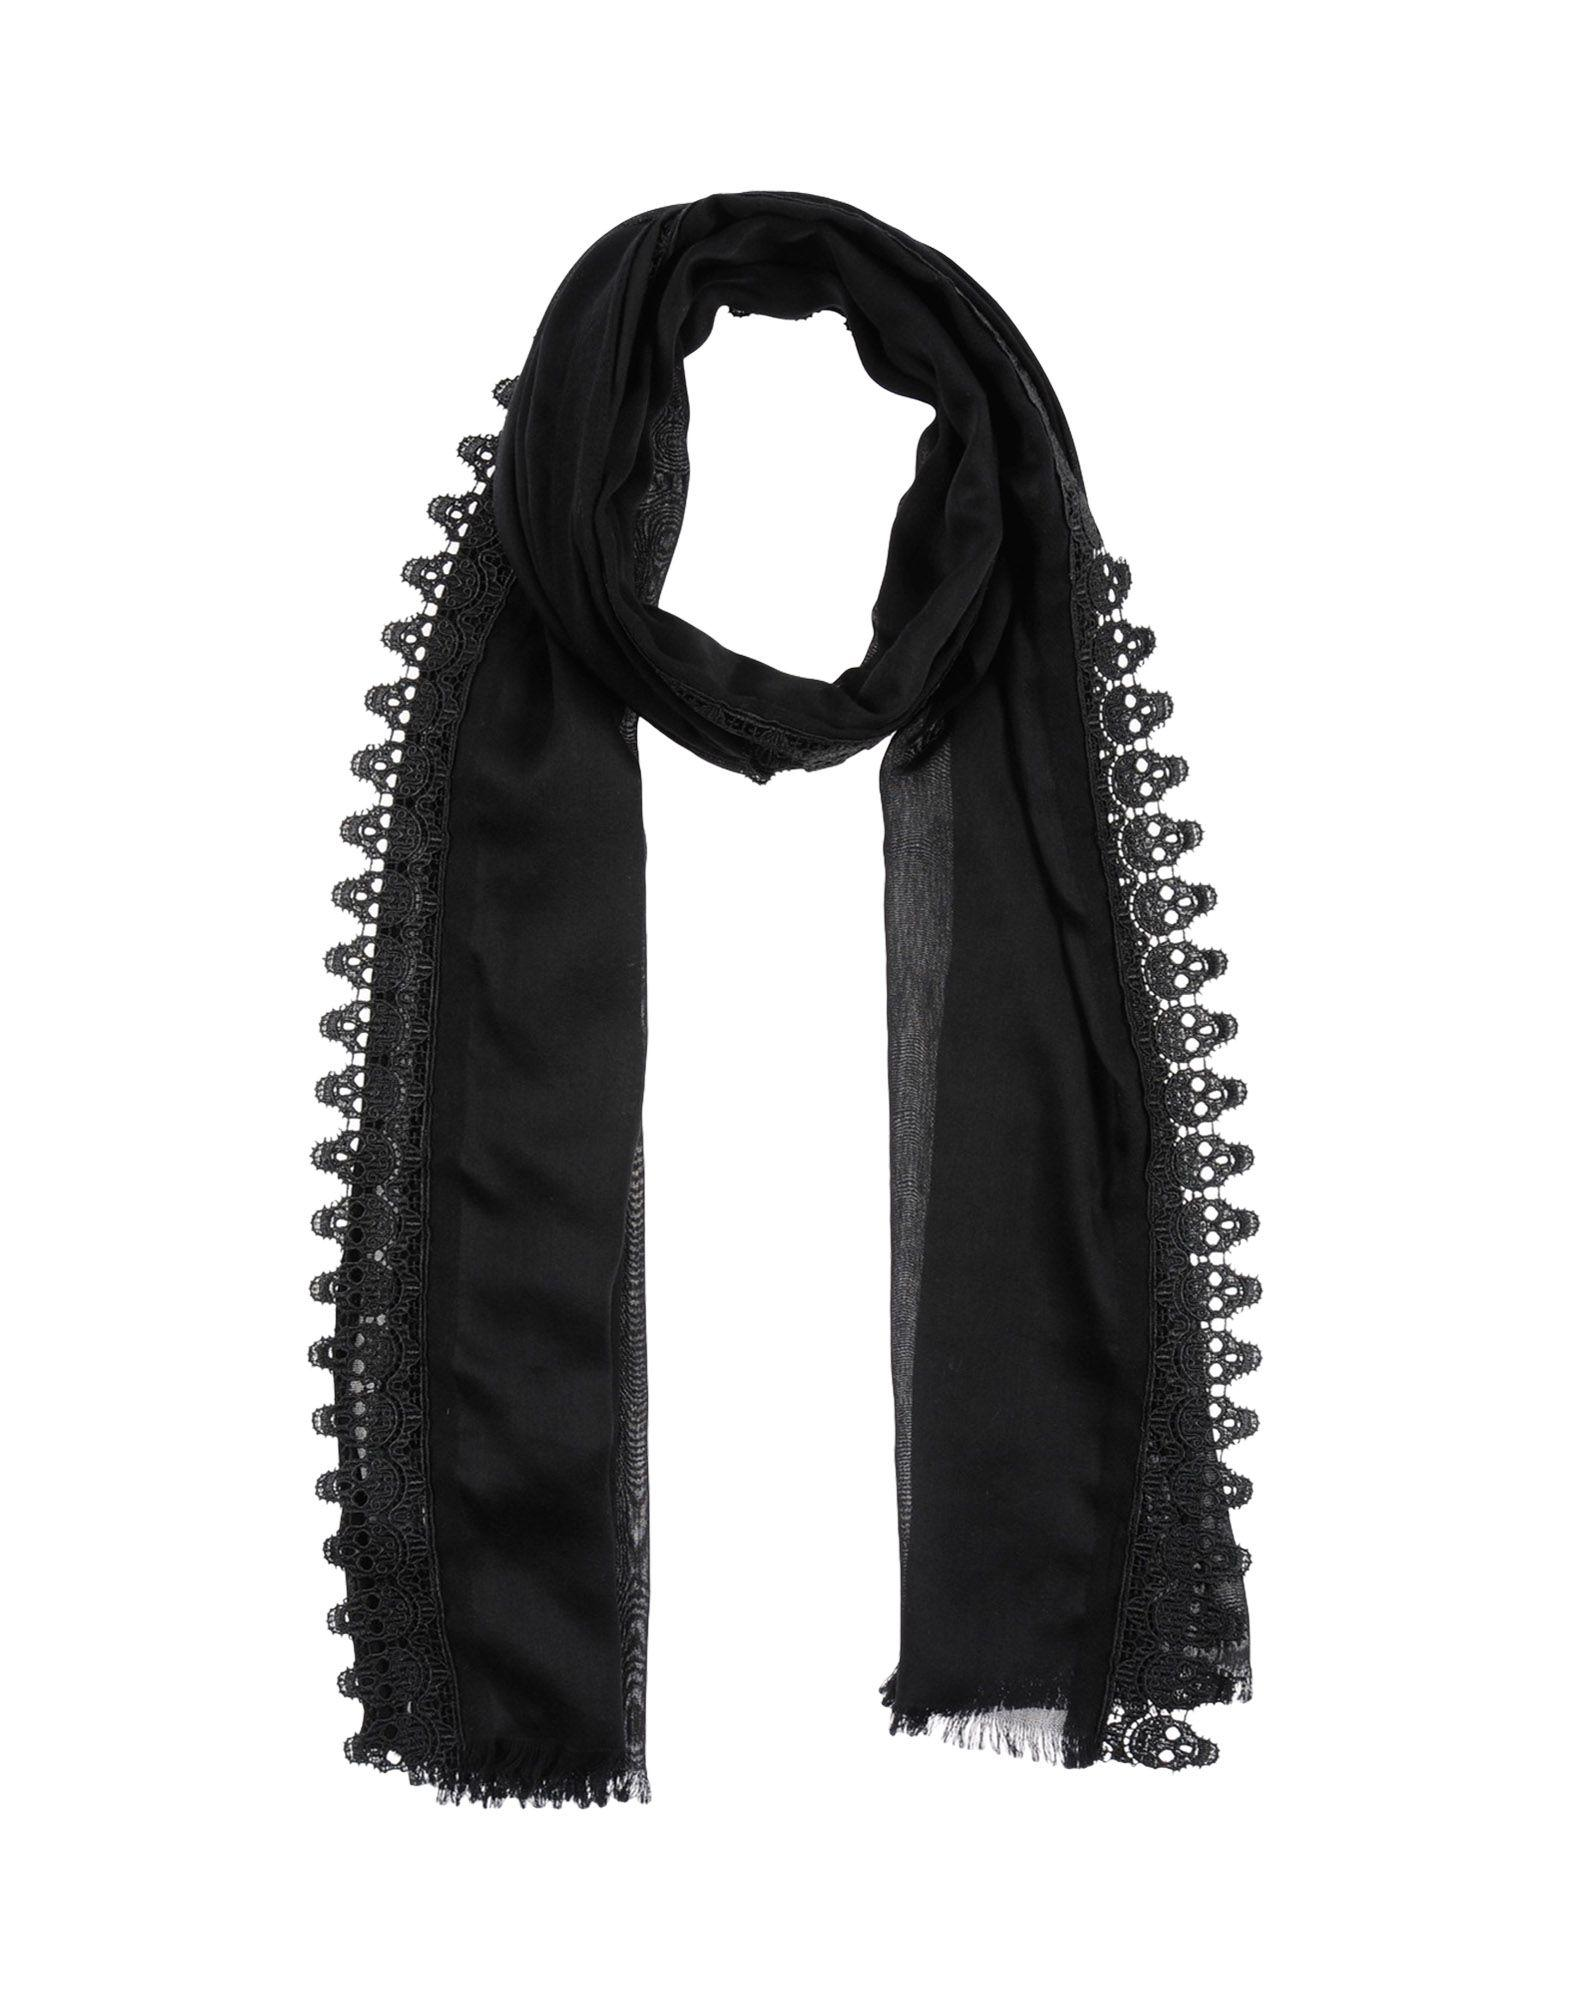 Alexander Mcqueen Scarves In Black